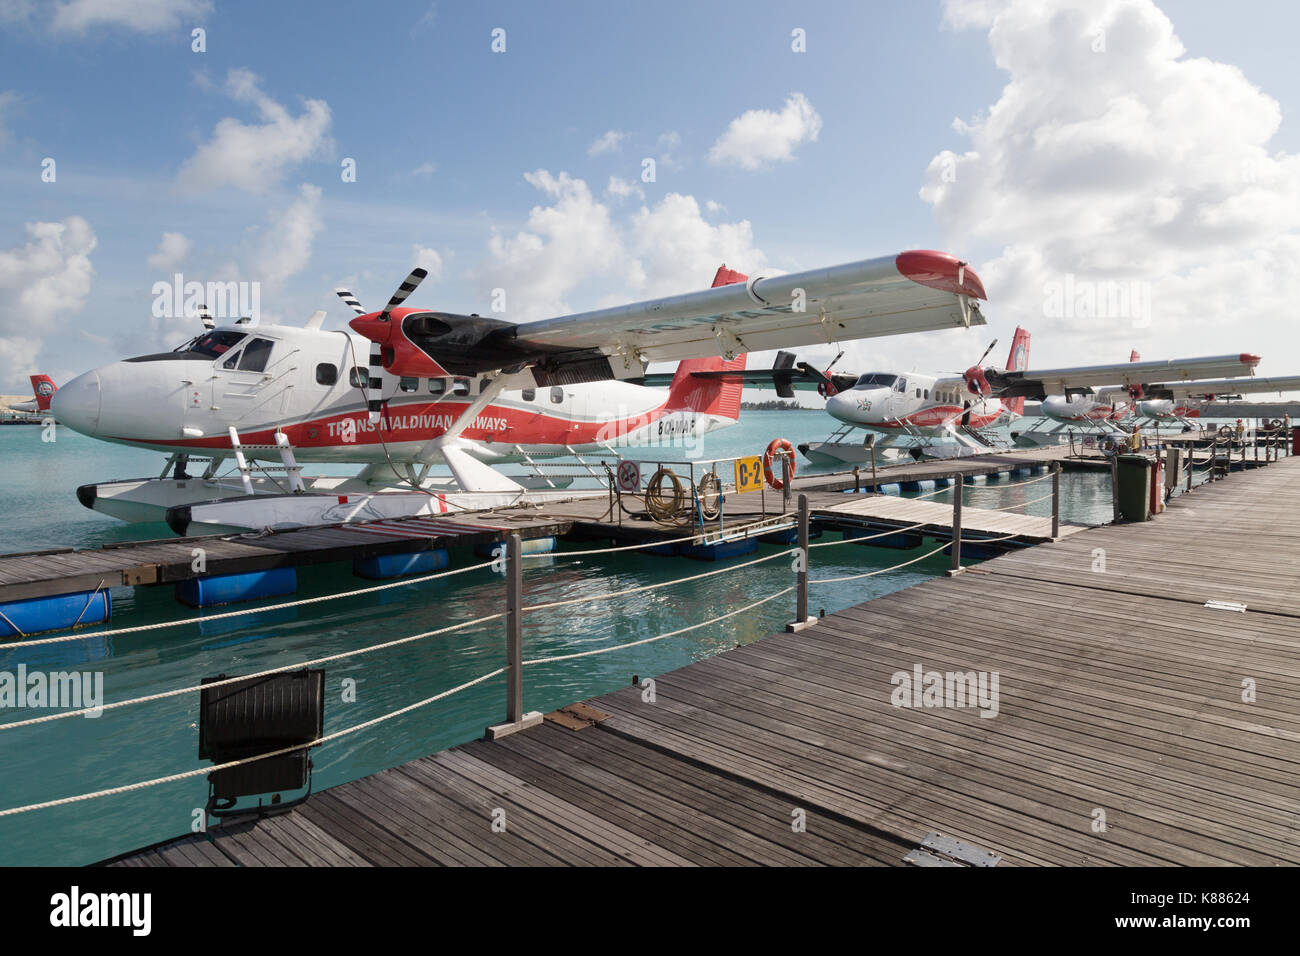 trans-maldivian-airways-seaplanes-at-male-airport-male-maldives-asia-K88624.jpg